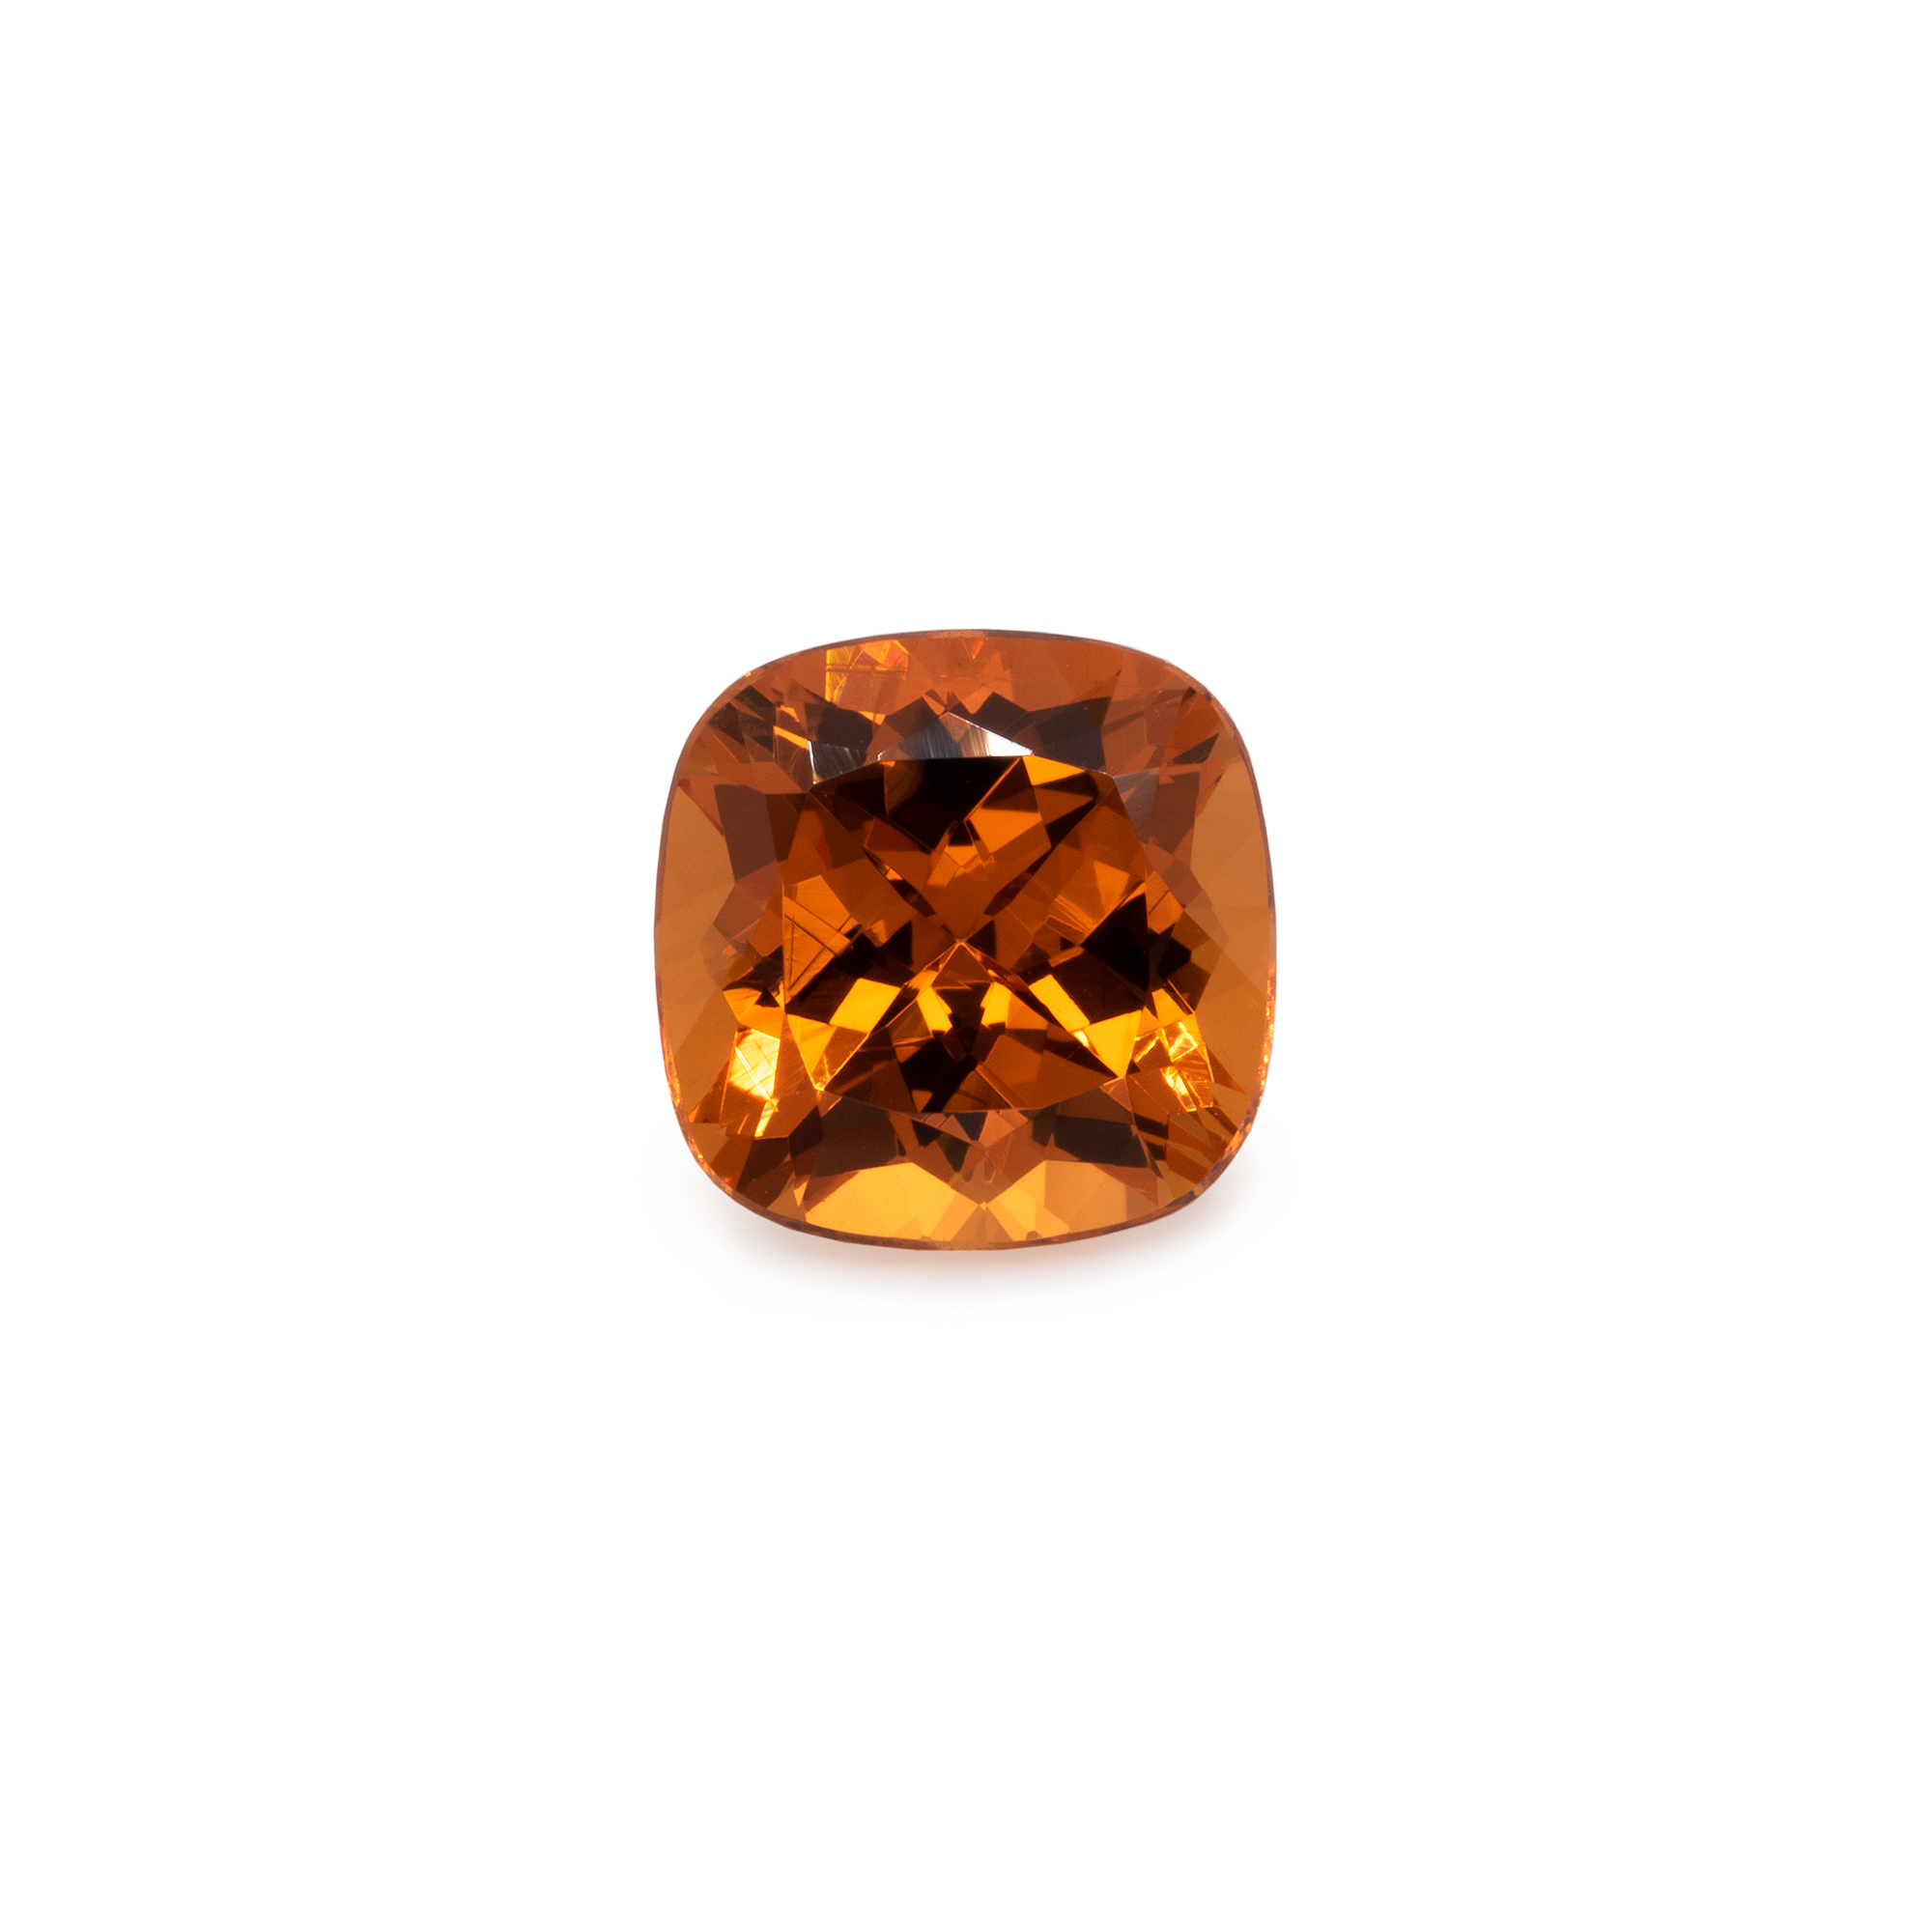 Mandarin Granat - orange, antik, 9x9 mm, 4,36 cts, Nr. MG12002